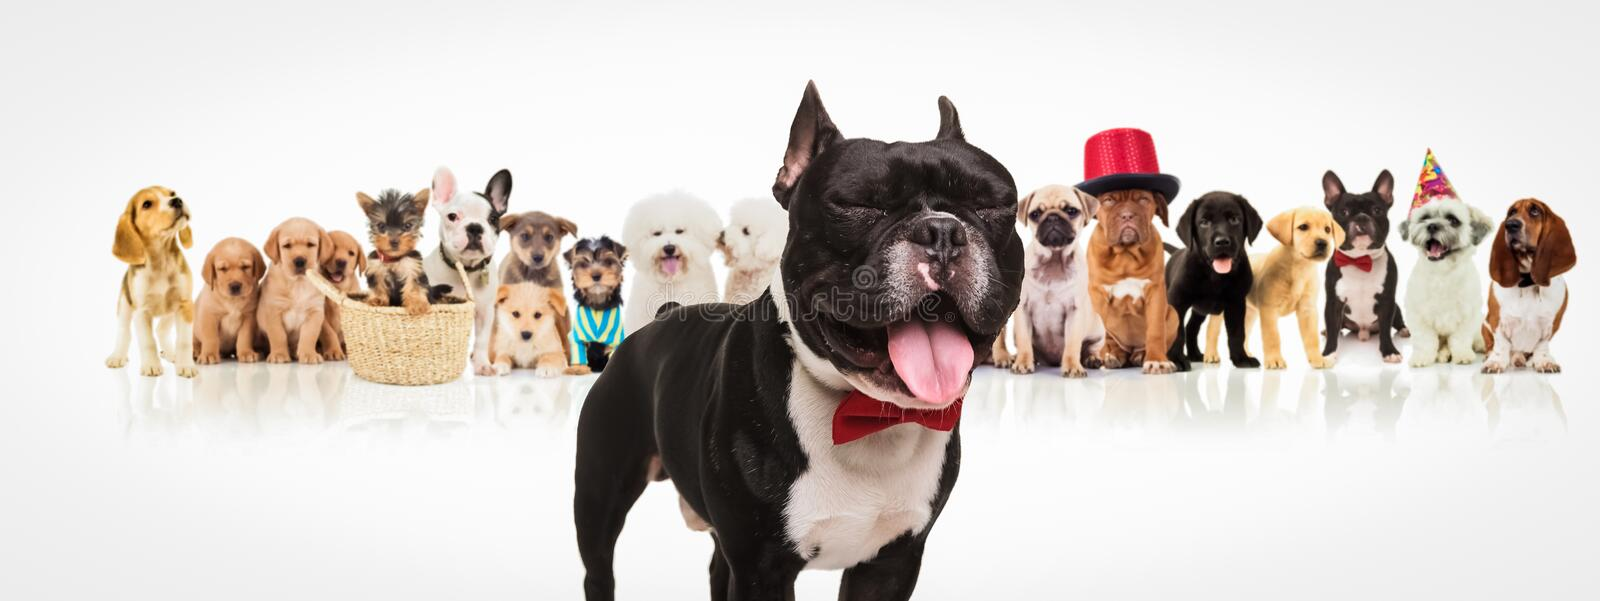 French bulldog sticking out tongue in front of dogs pack. Happy french bulldog puppy wearing bowtie sticking out tongue and having fun in front of a large group stock photography